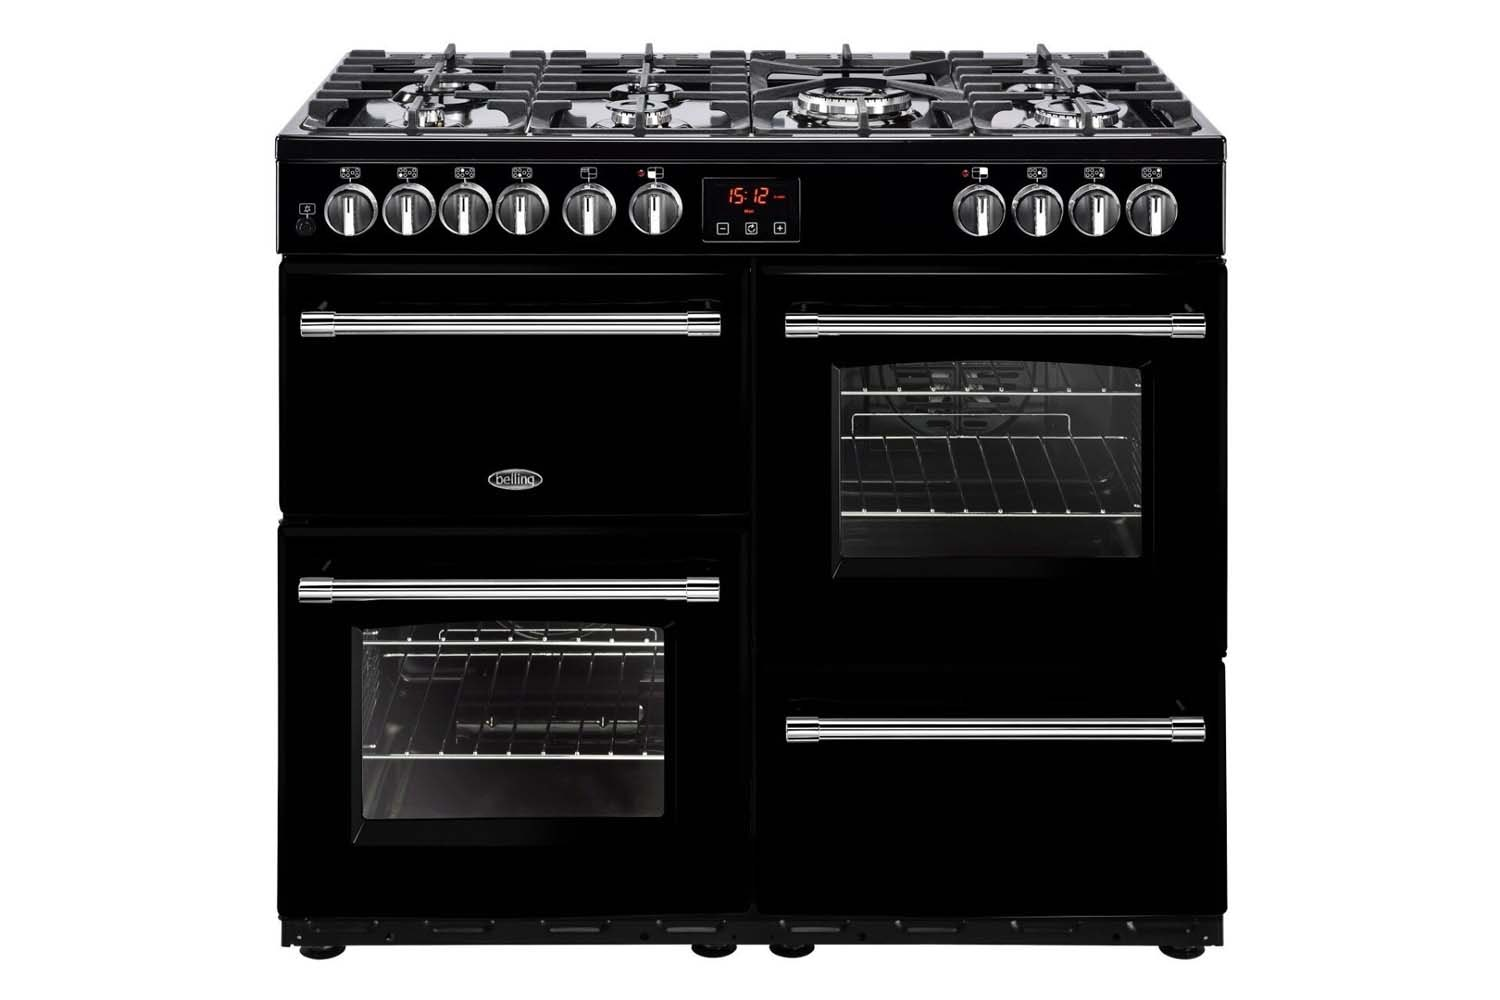 Belling Farmhouse 100cm Dual Fuel Range Cooker | FH100DFTBK | Black